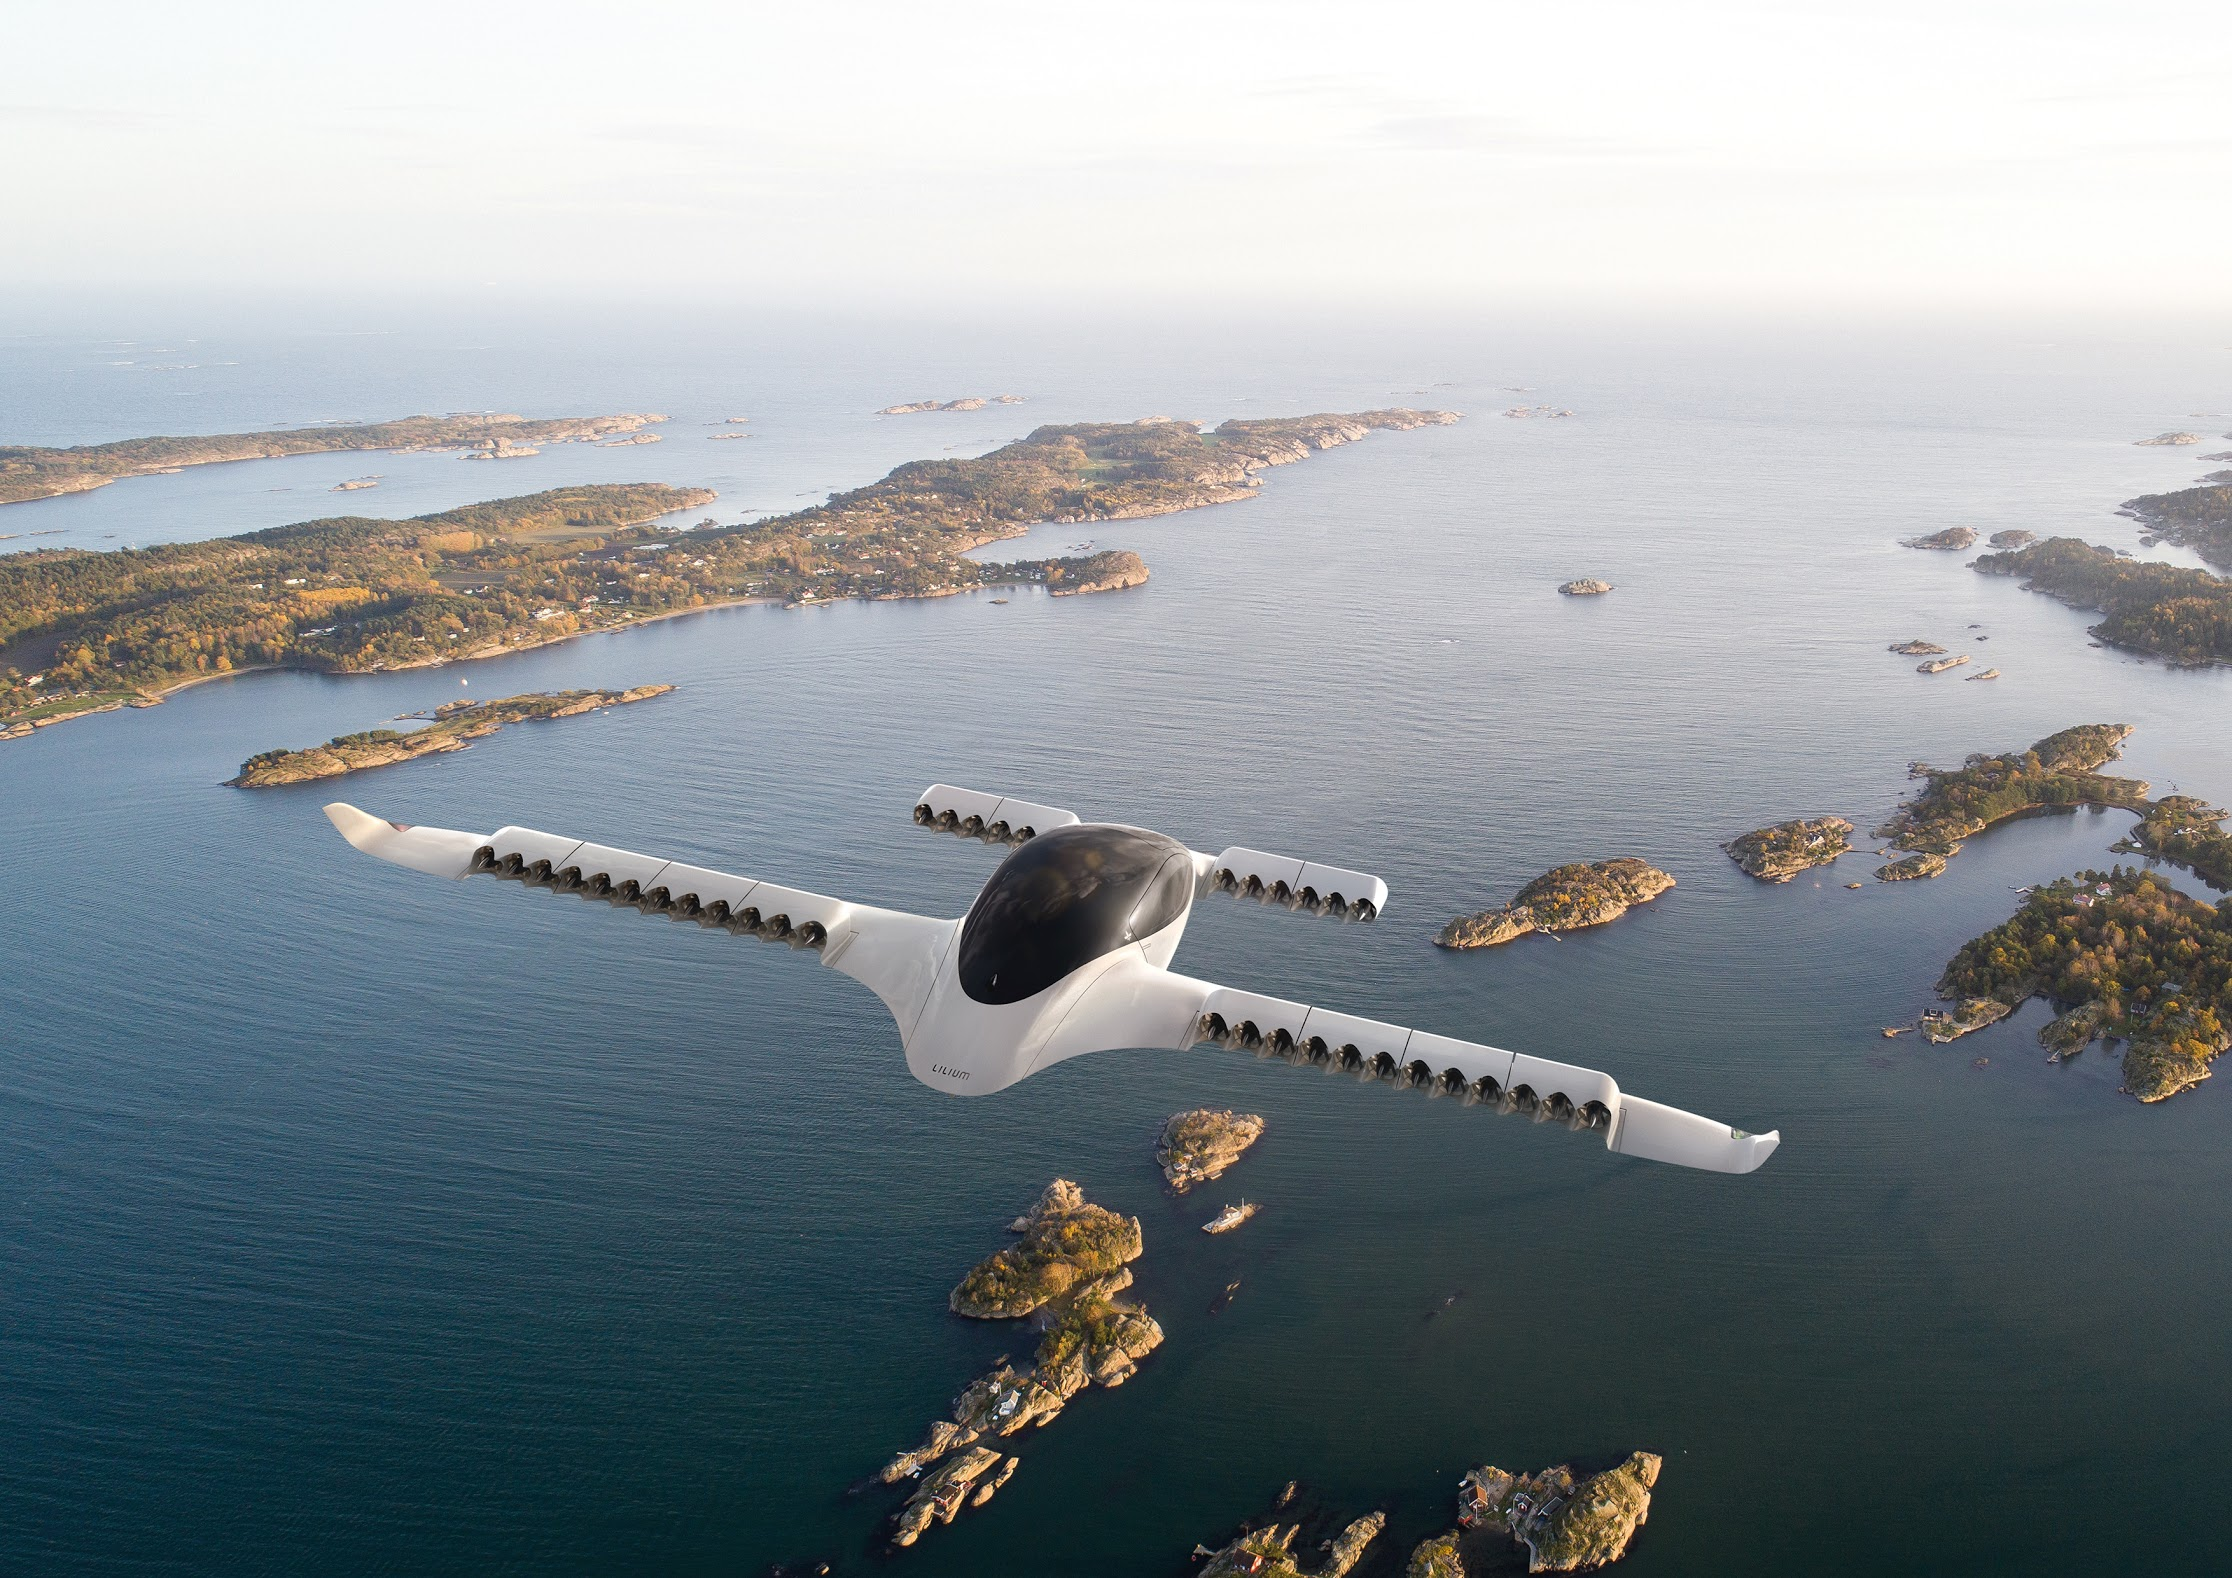 Lilium_J013_air-taxi-flying-over-islands